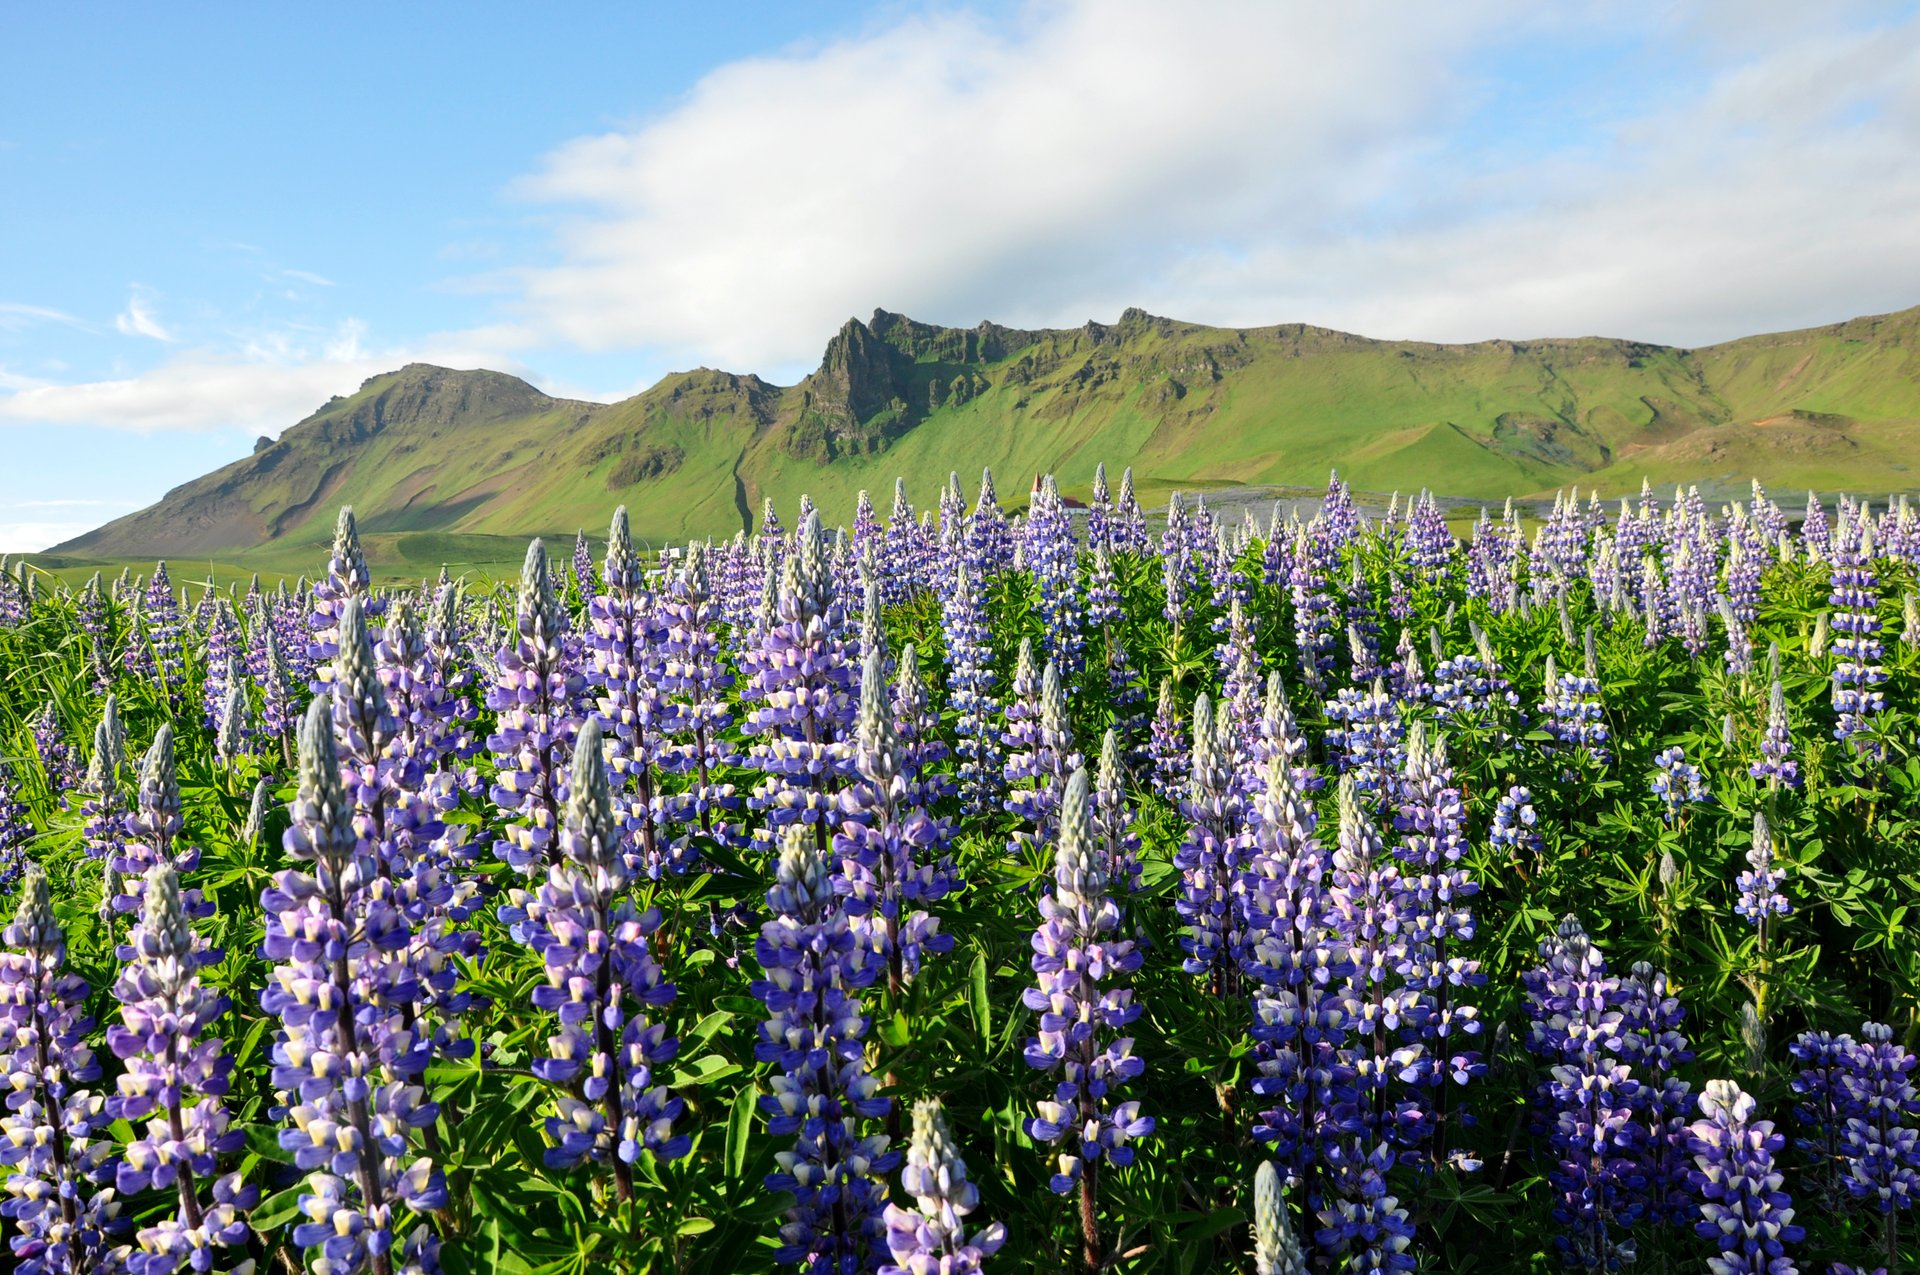 Lupin Blooming in Iceland - Best Time